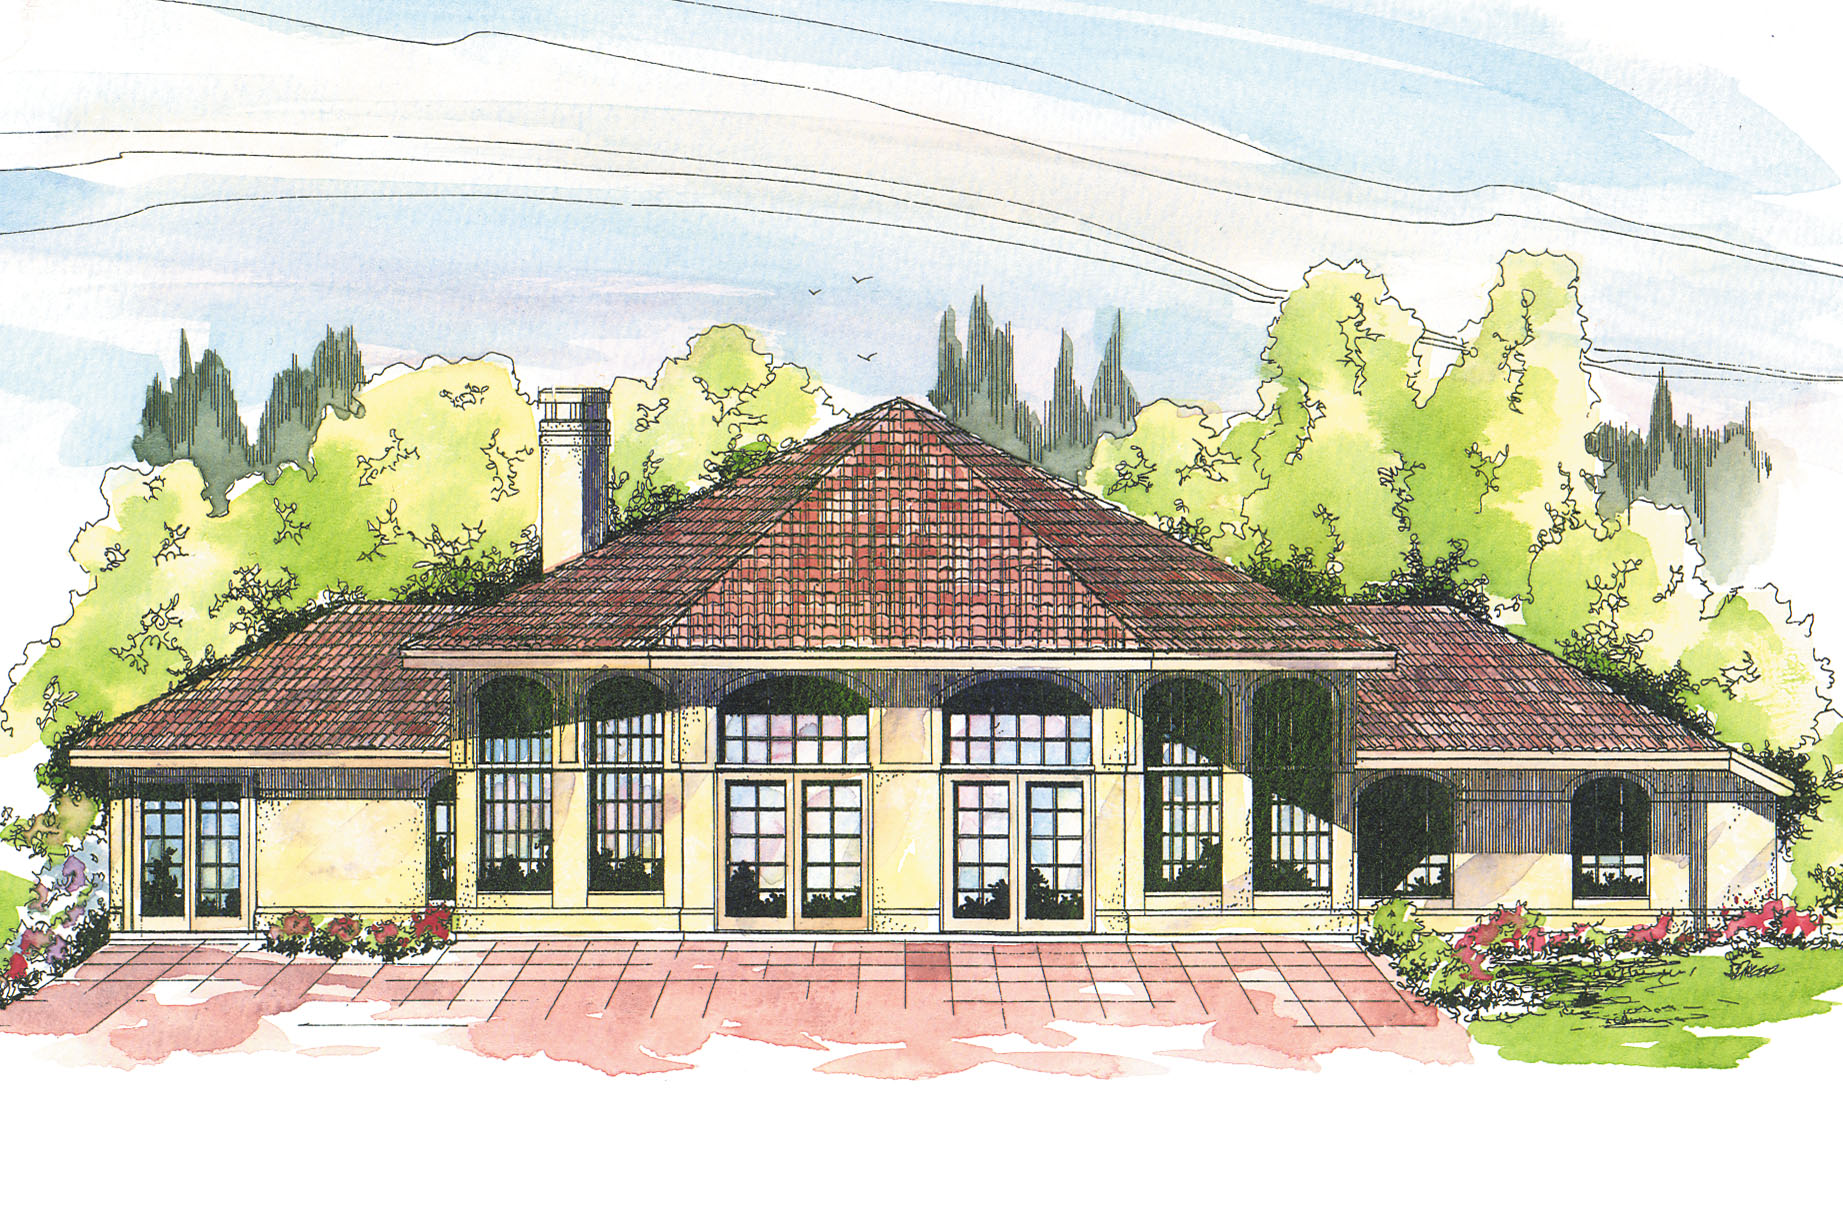 Southwest house plans oakland 10 037 associated designs for House plan and design images